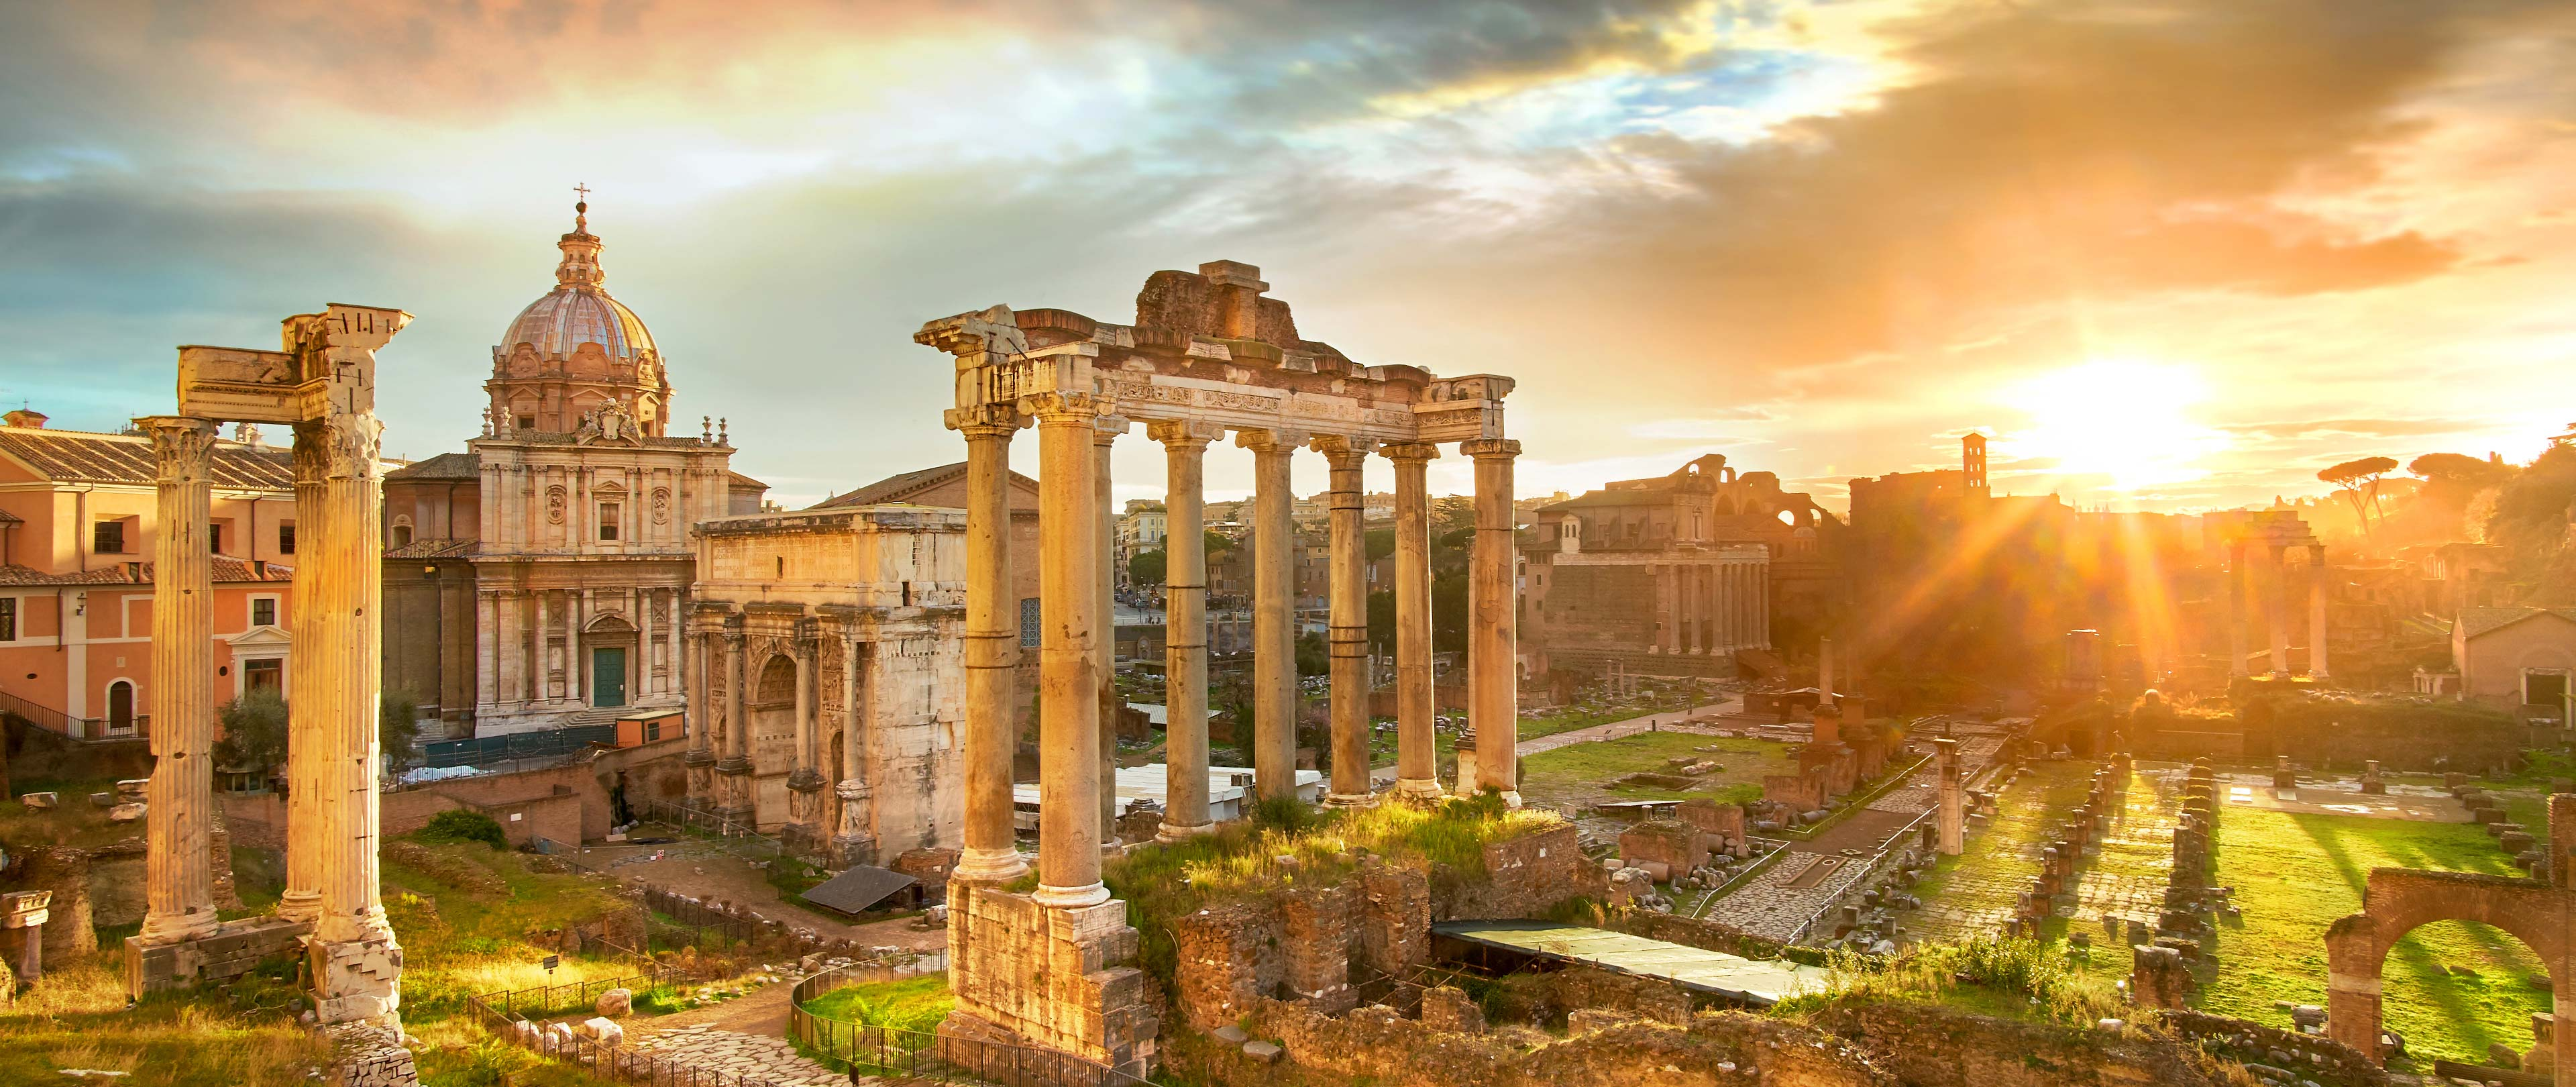 Places to Visit When in Rome